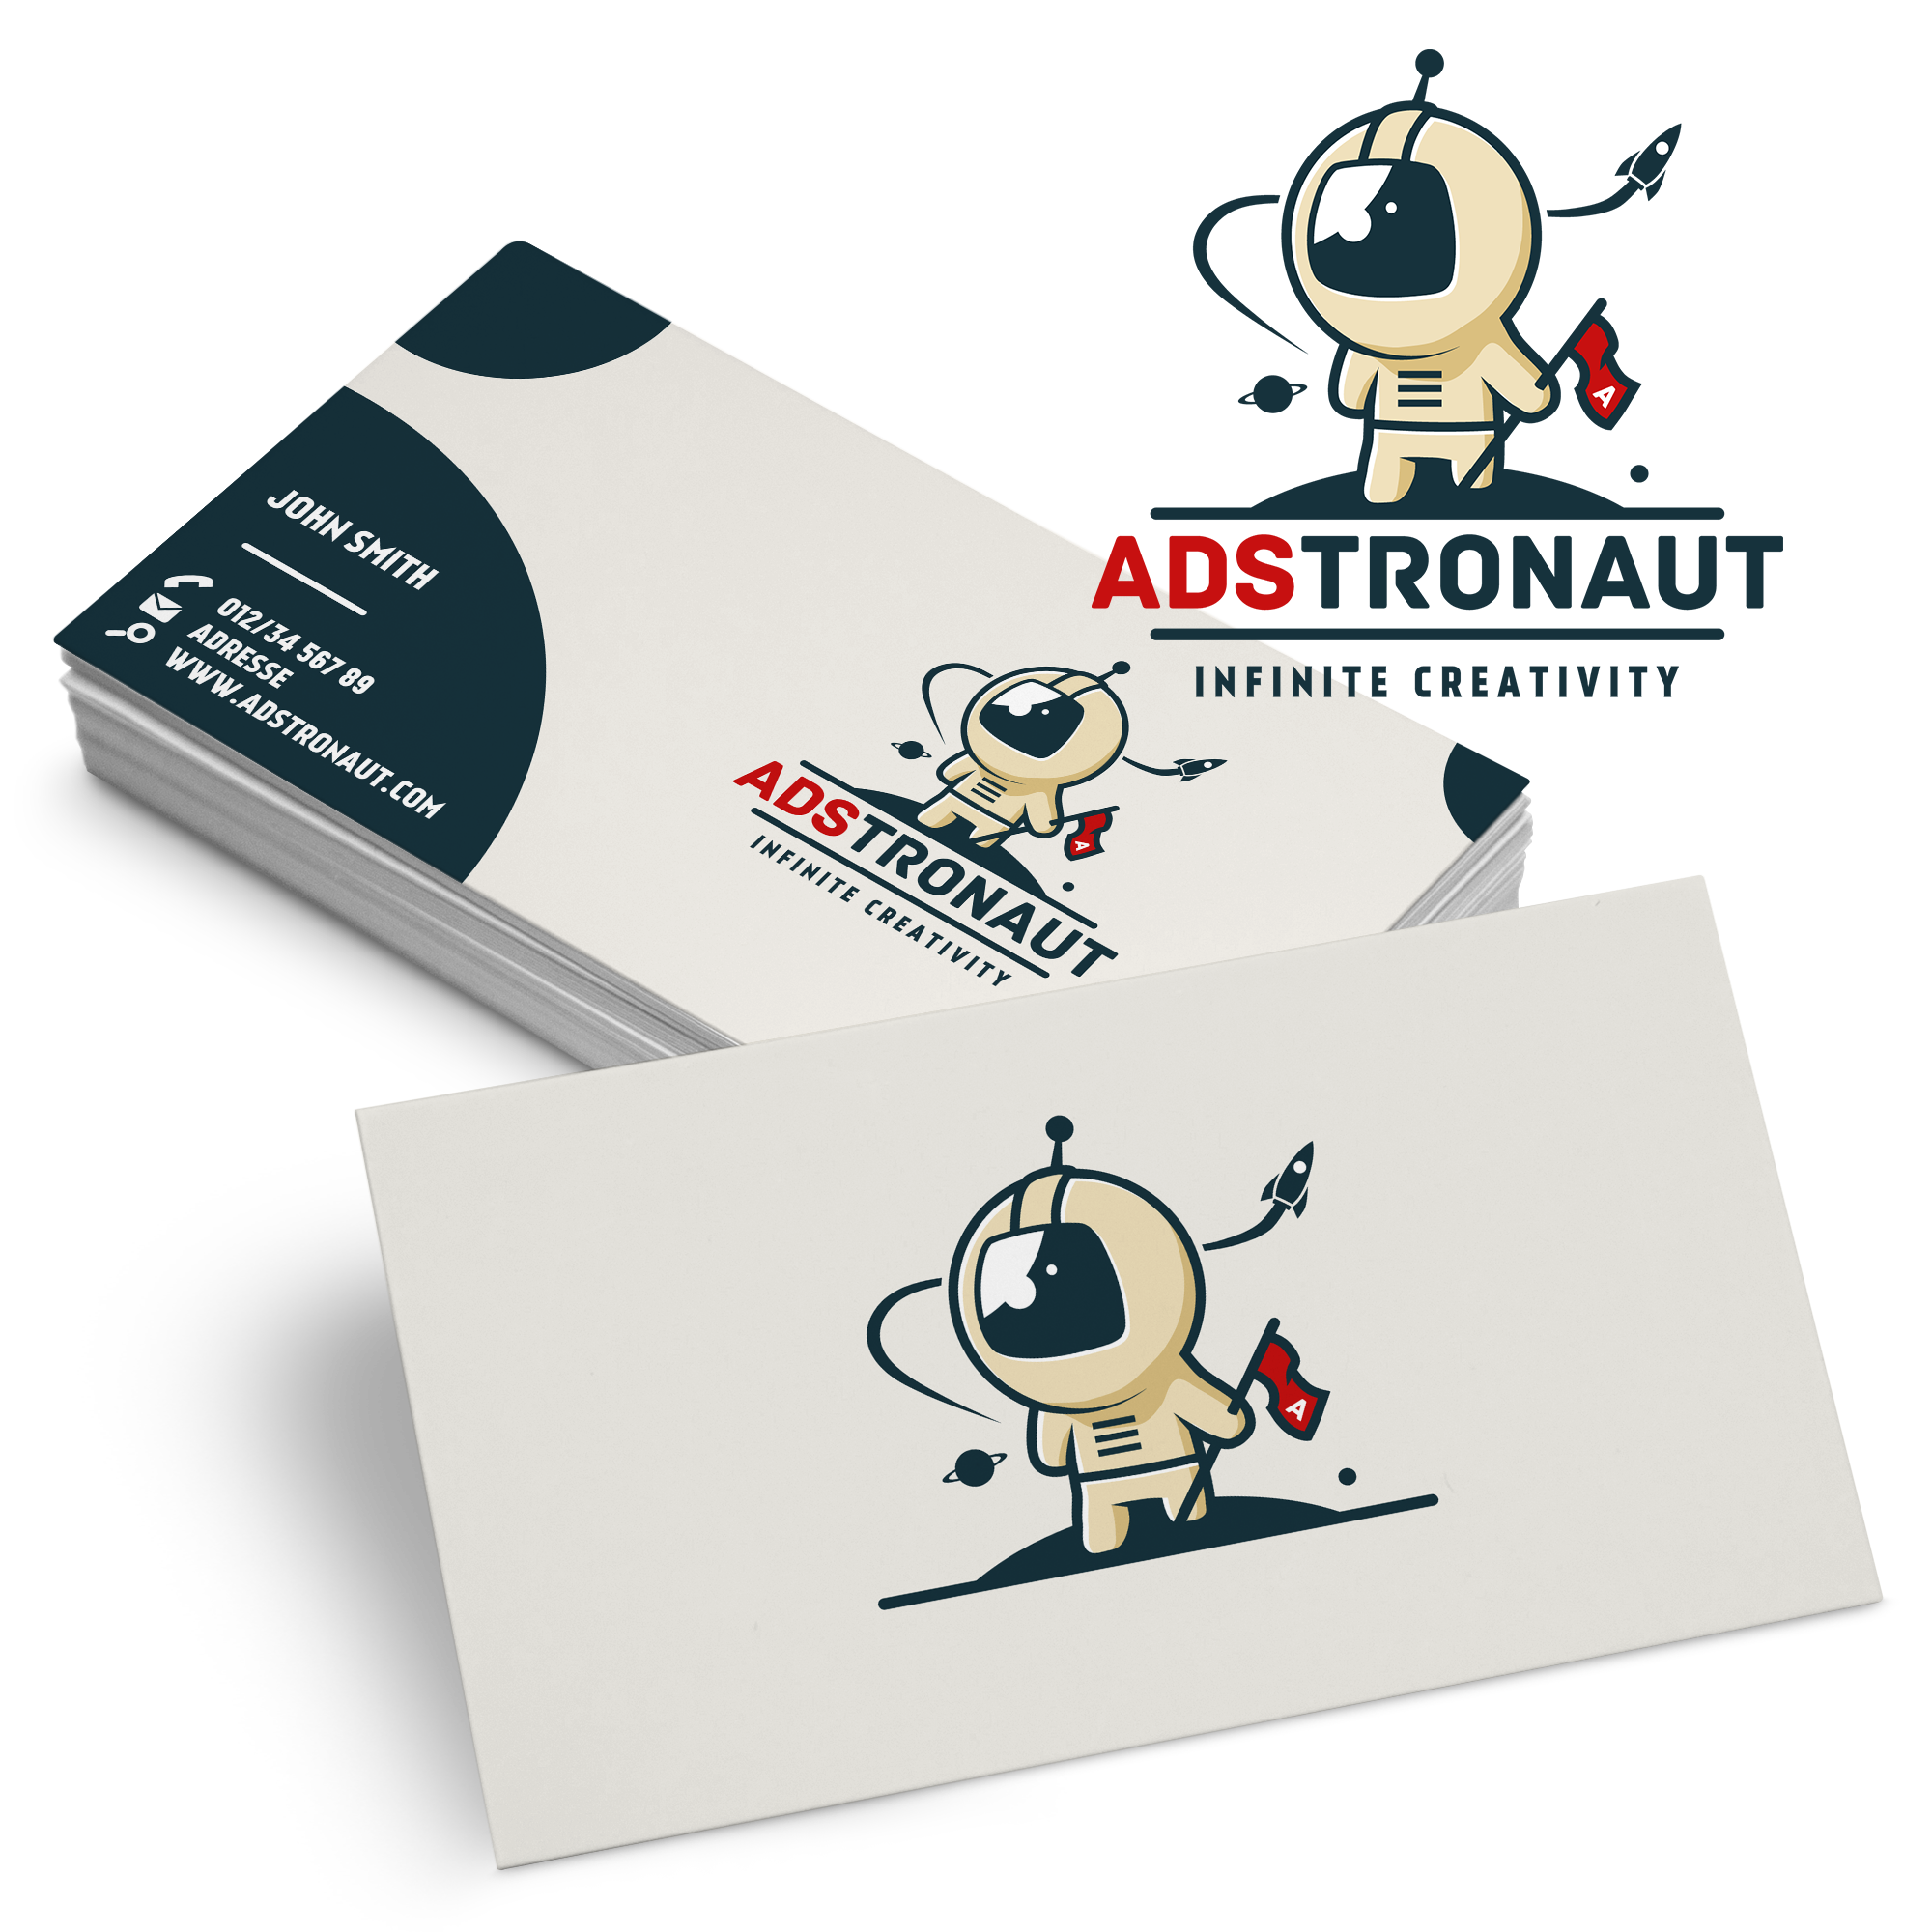 business card logos get a custom logo for business cards 99designs